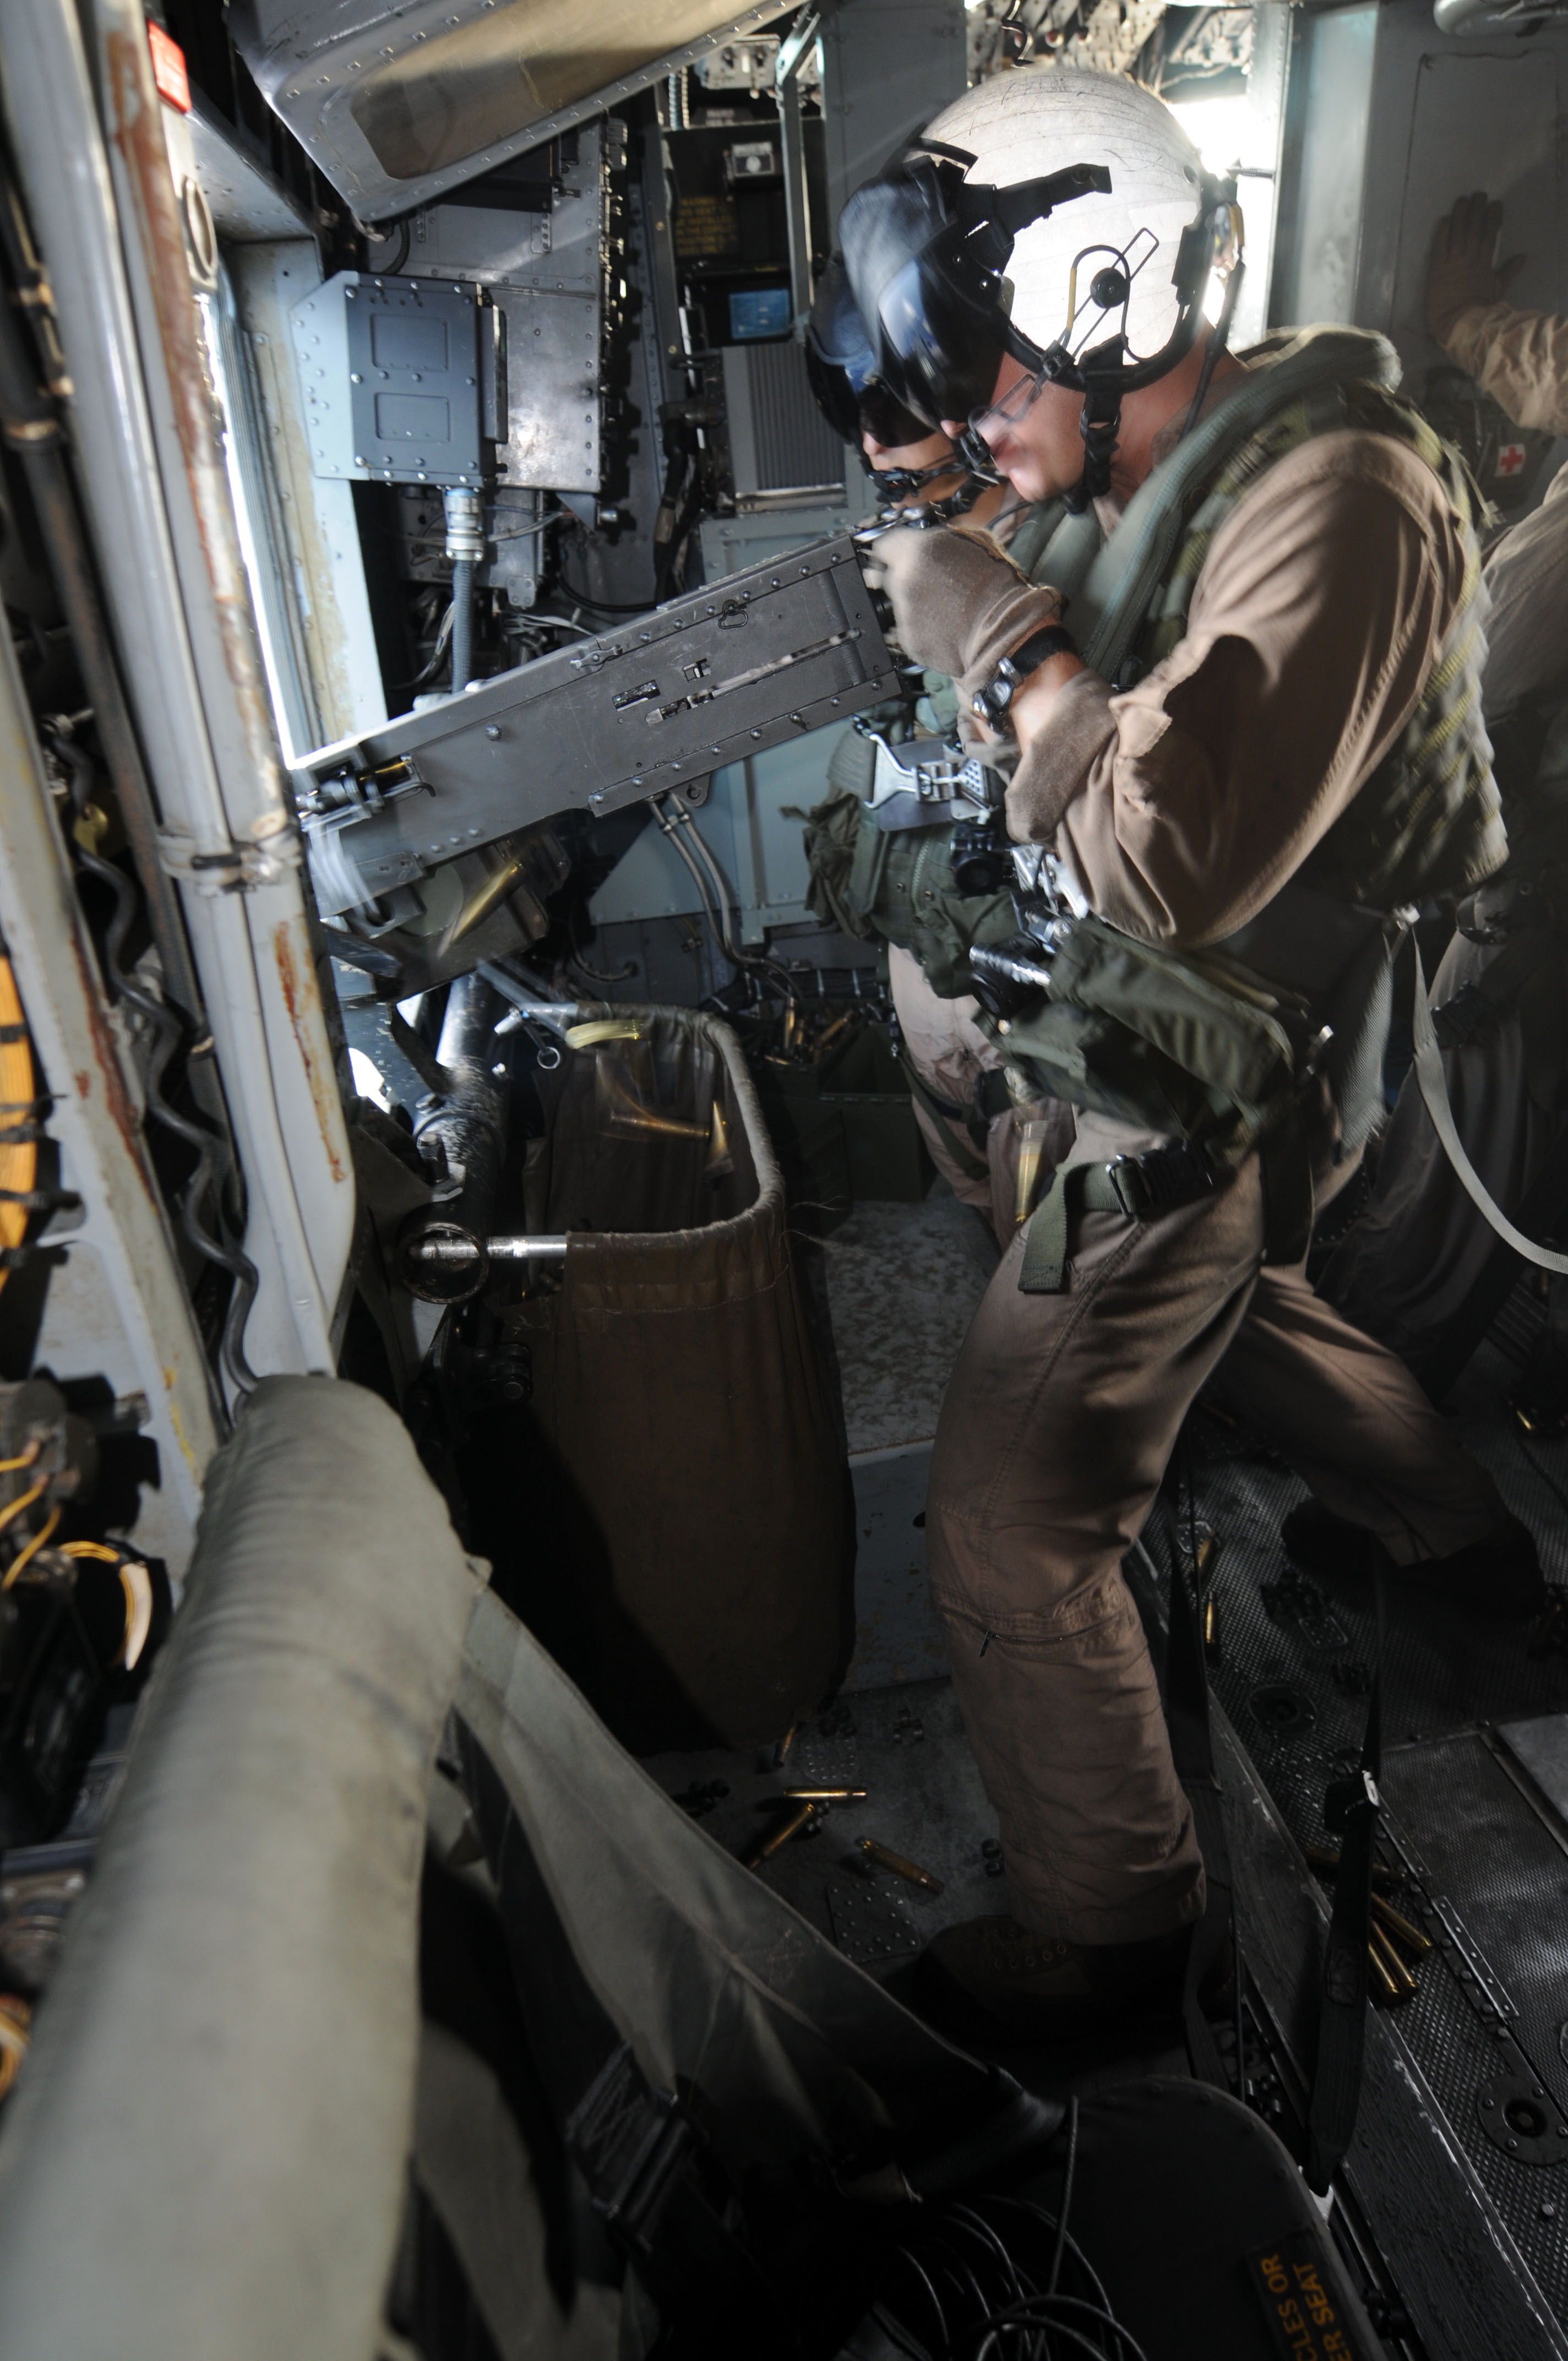 File:US Navy 091020-N-0890S-171 Sgt. William Krenz, from ...